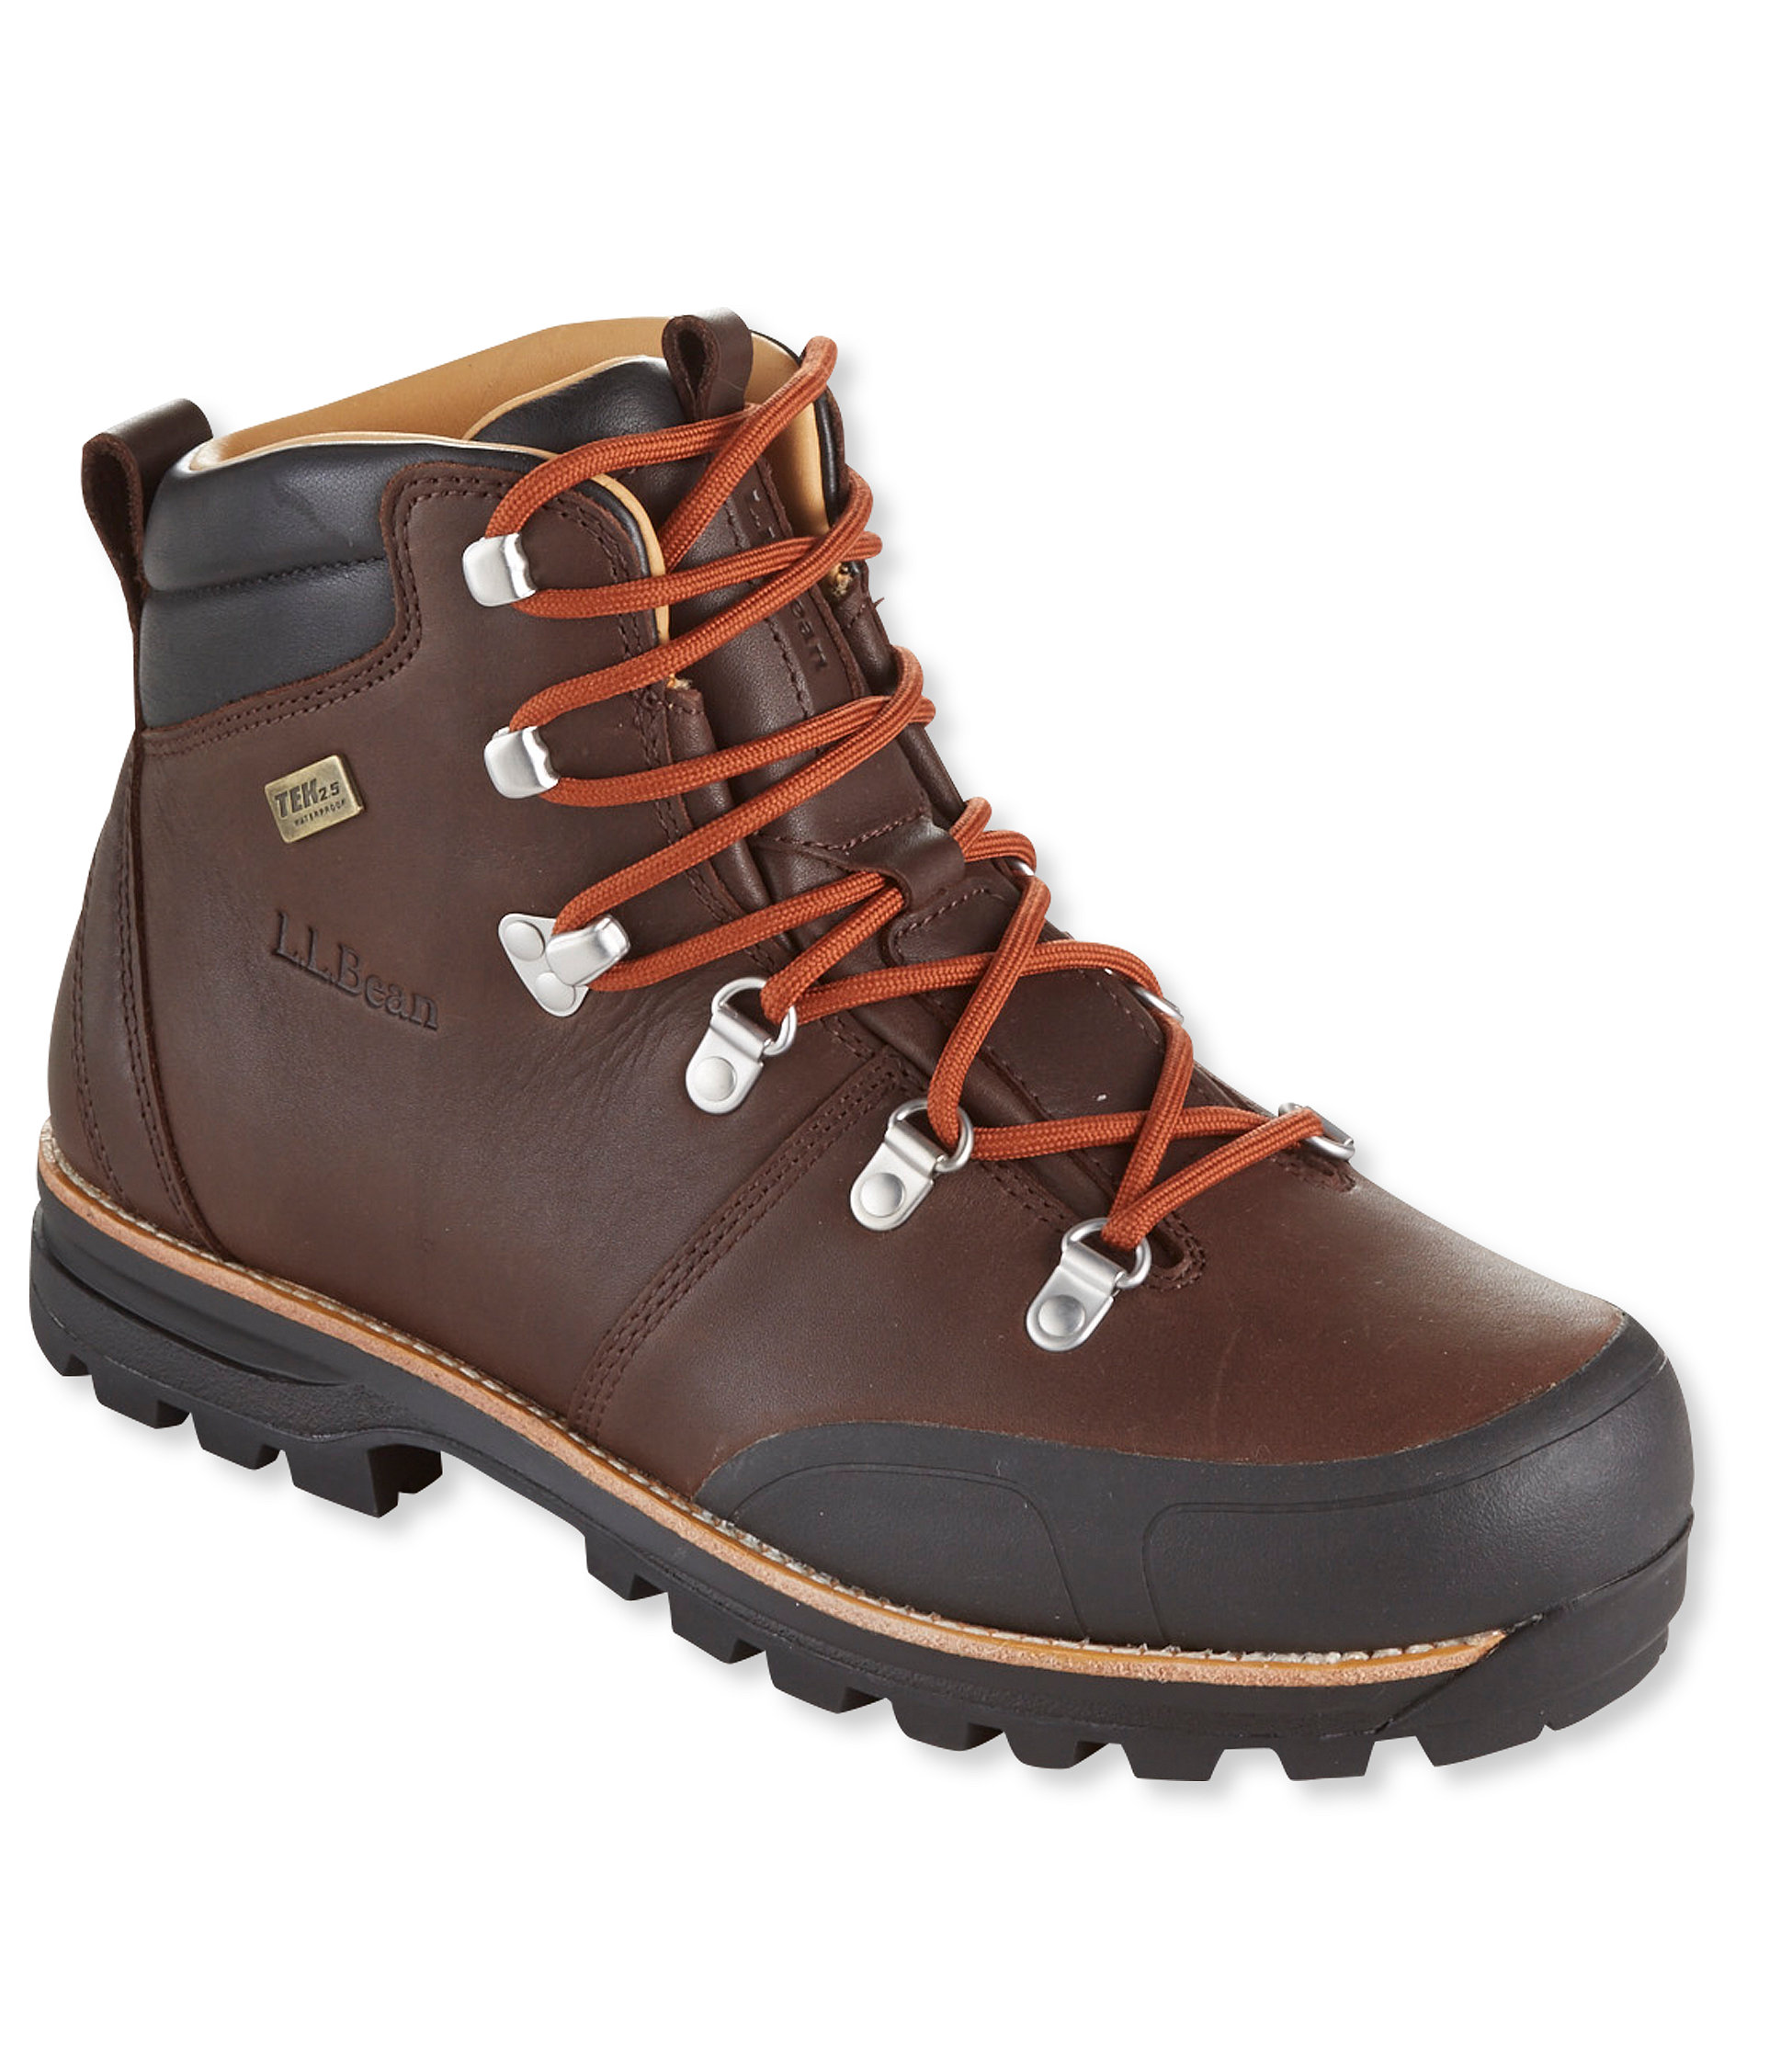 photo: L.L.Bean Knife Edge hiking boot